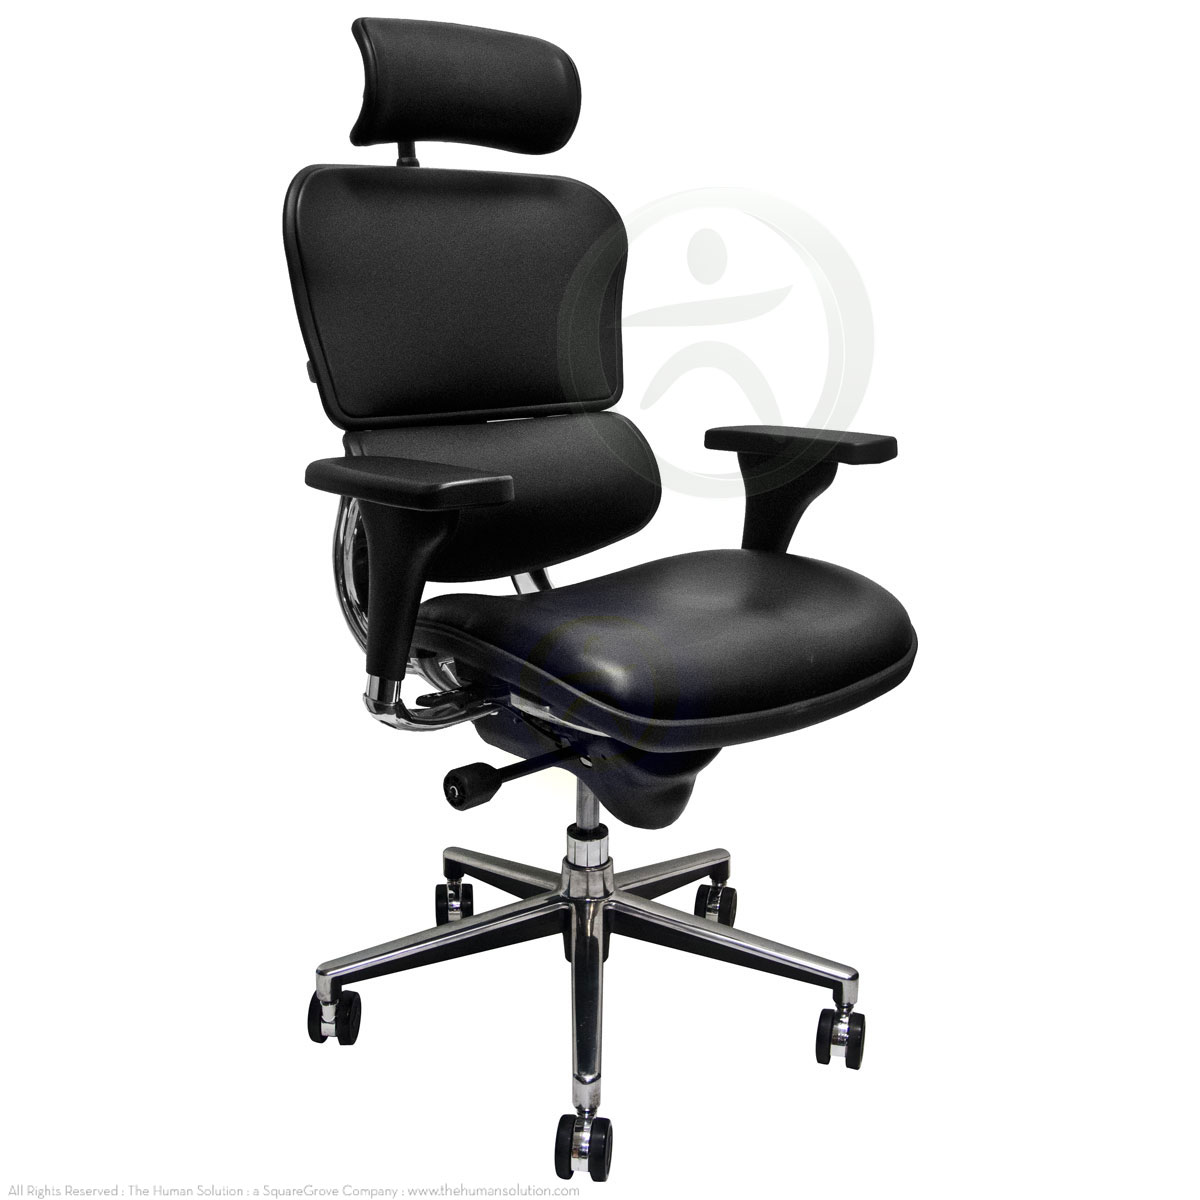 shop raynor ergohuman chairs leather with headrest le9erg. Black Bedroom Furniture Sets. Home Design Ideas